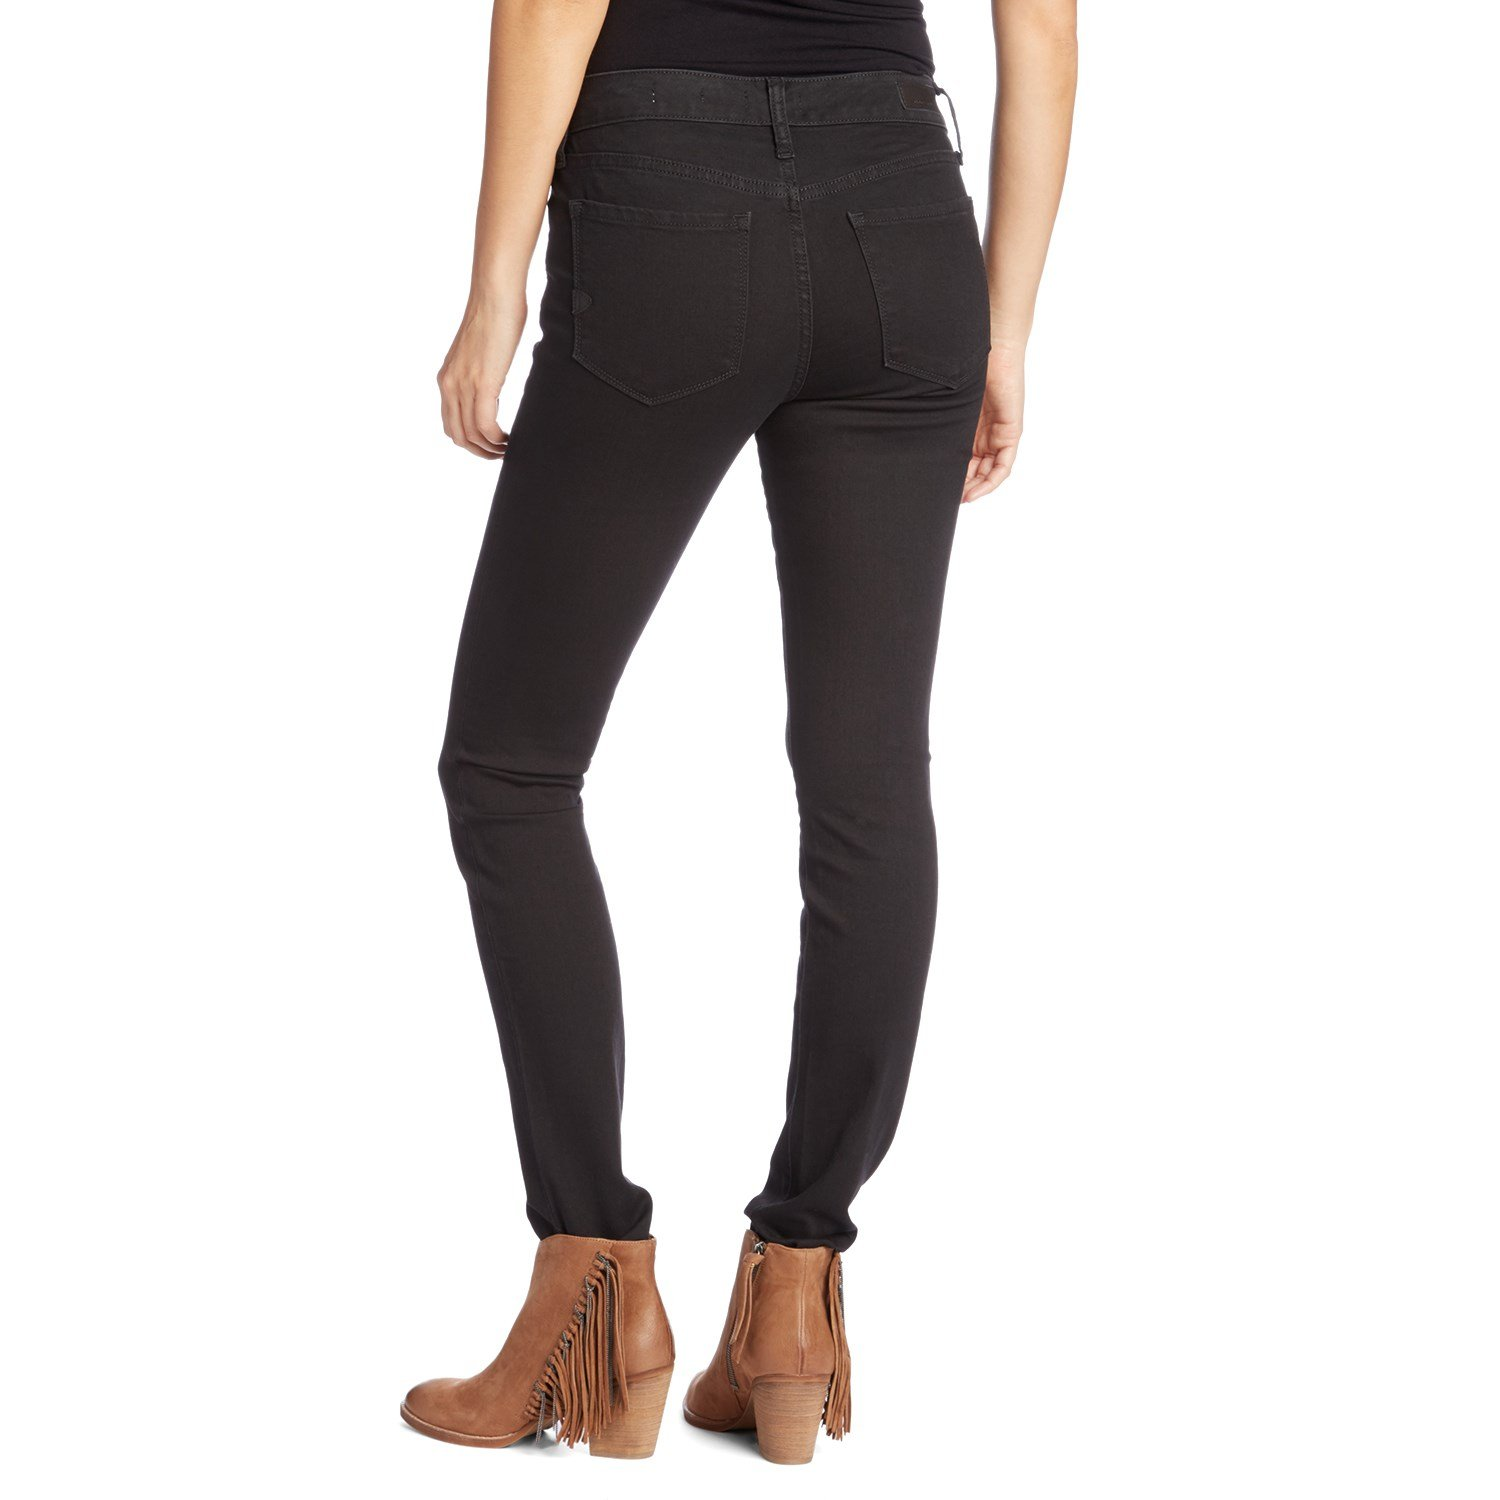 SHOPBOP - Black Jeans FASTEST FREE SHIPPING WORLDWIDE on Black Jeans & FREE EASY RETURNS.